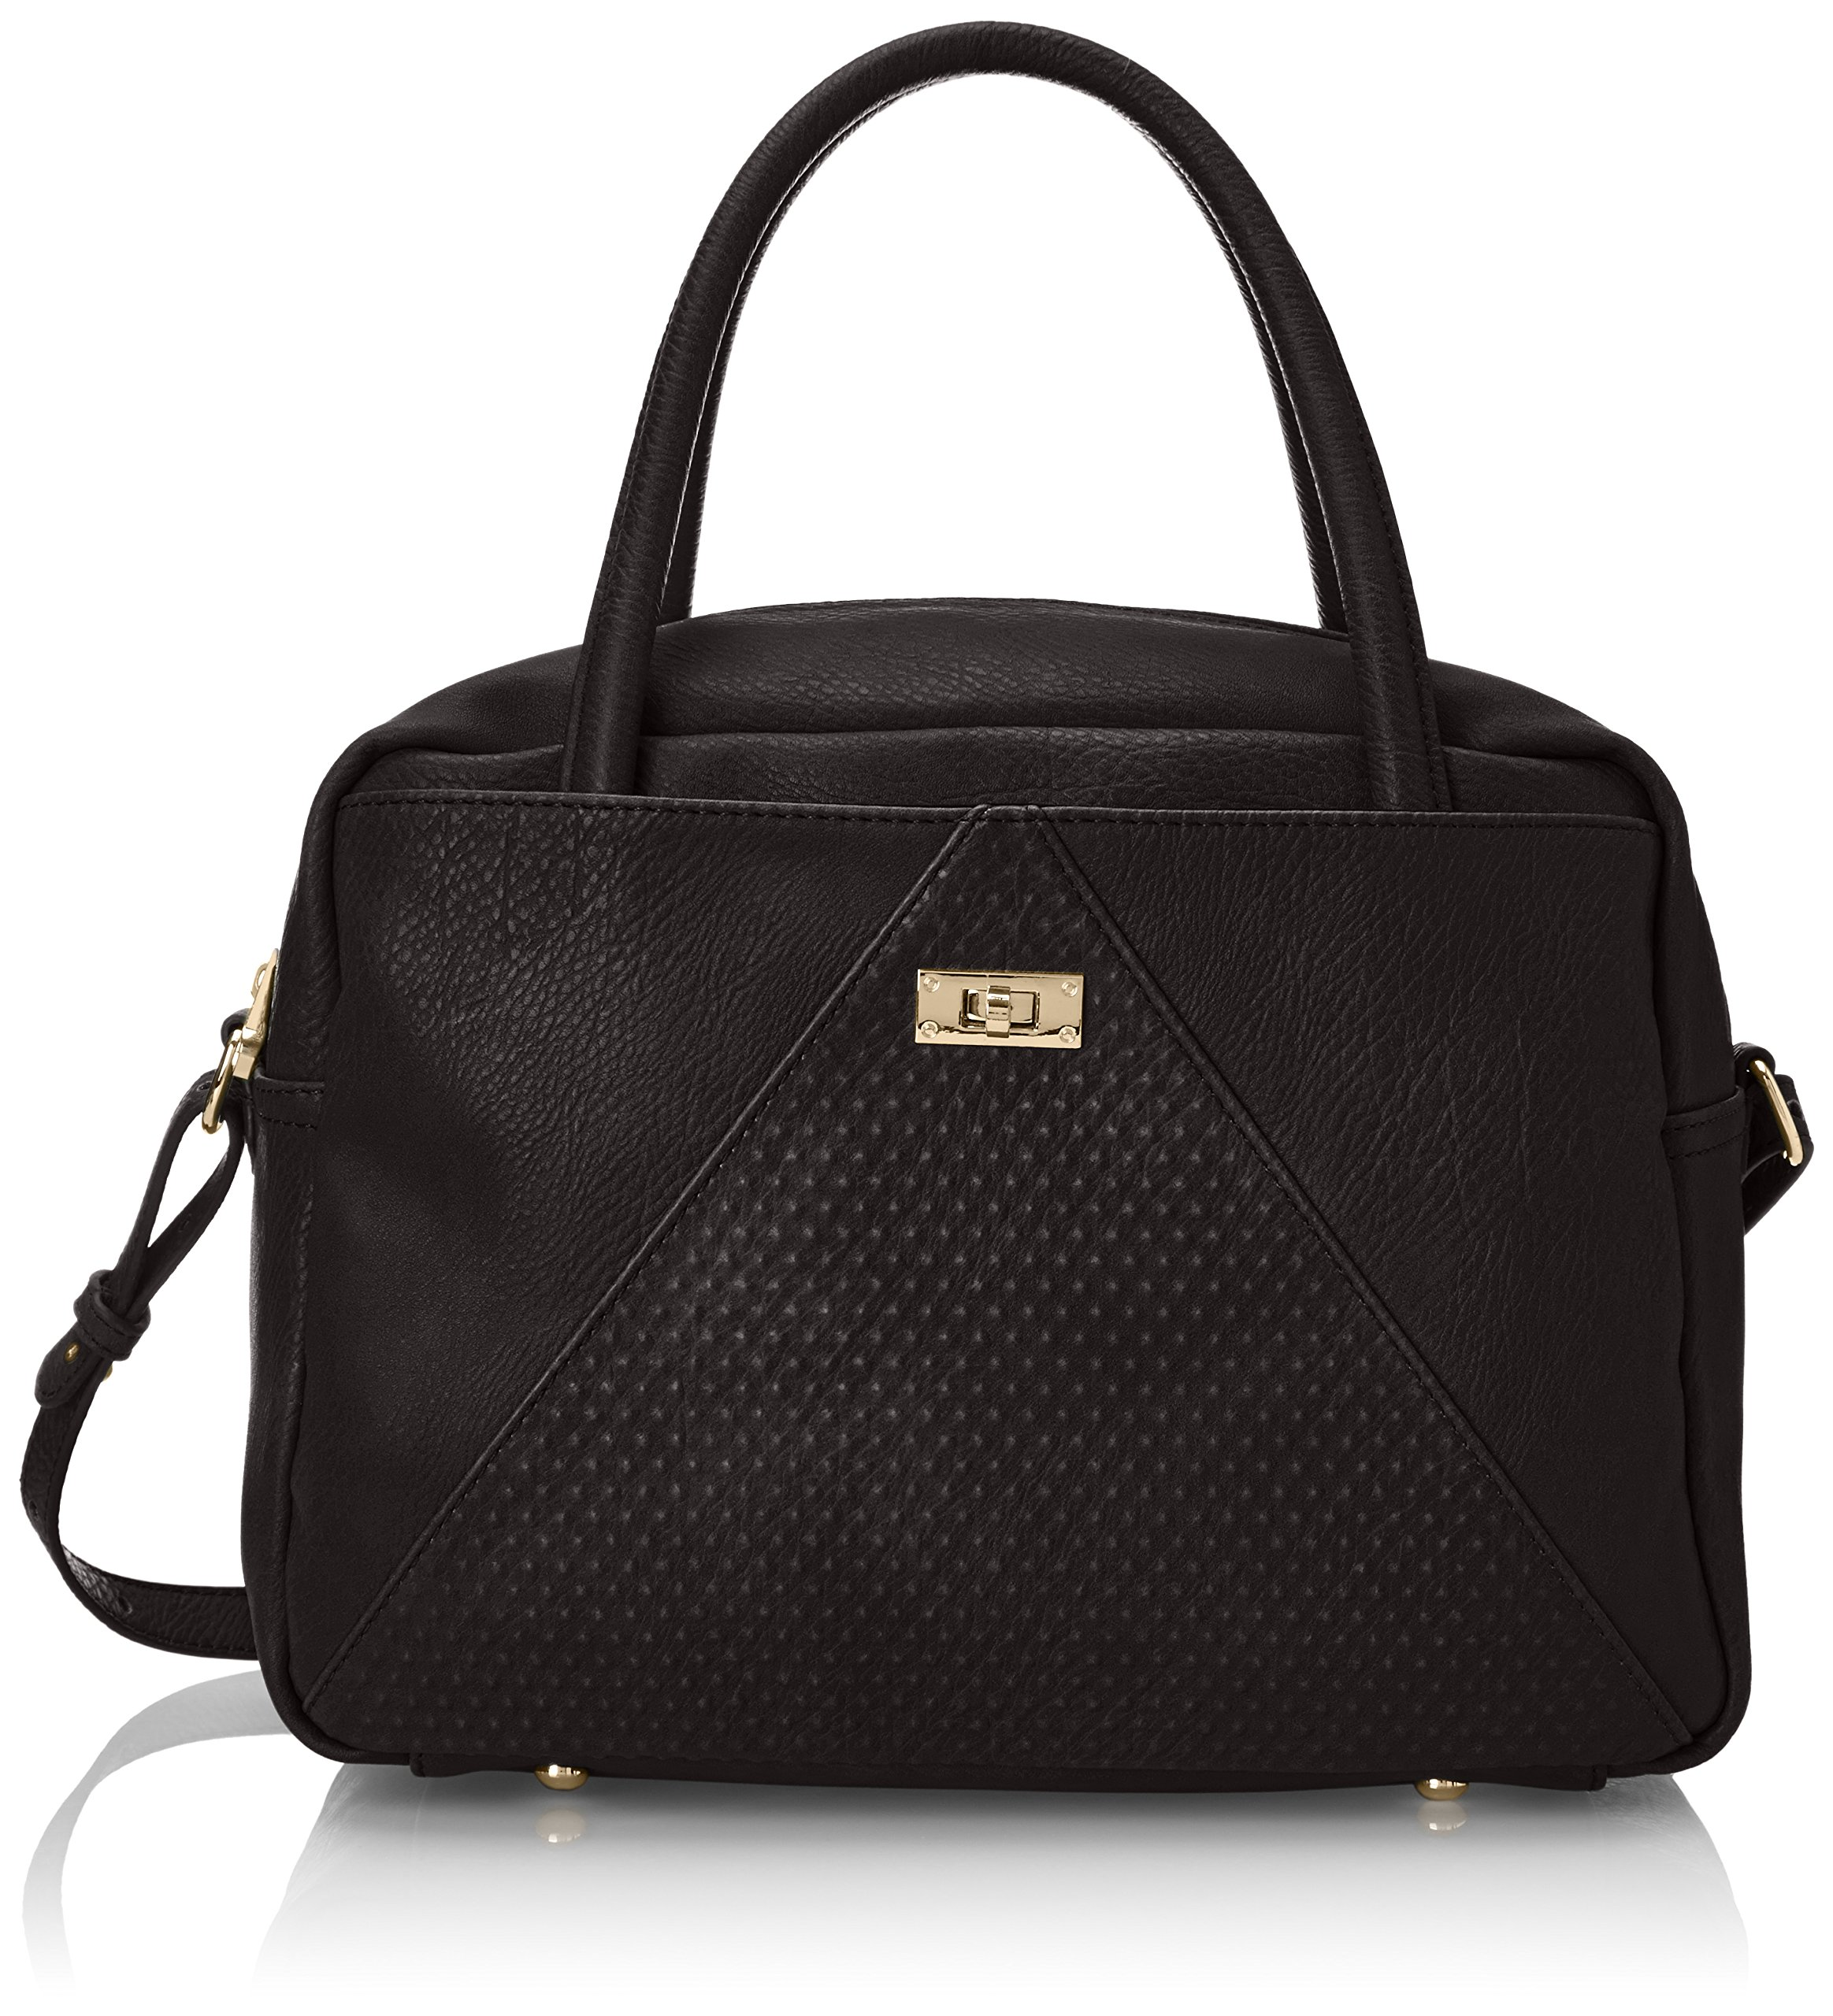 POVERTY FLATS by rian Raised Dot V Satchel Top Handle Bag, Black, One Size